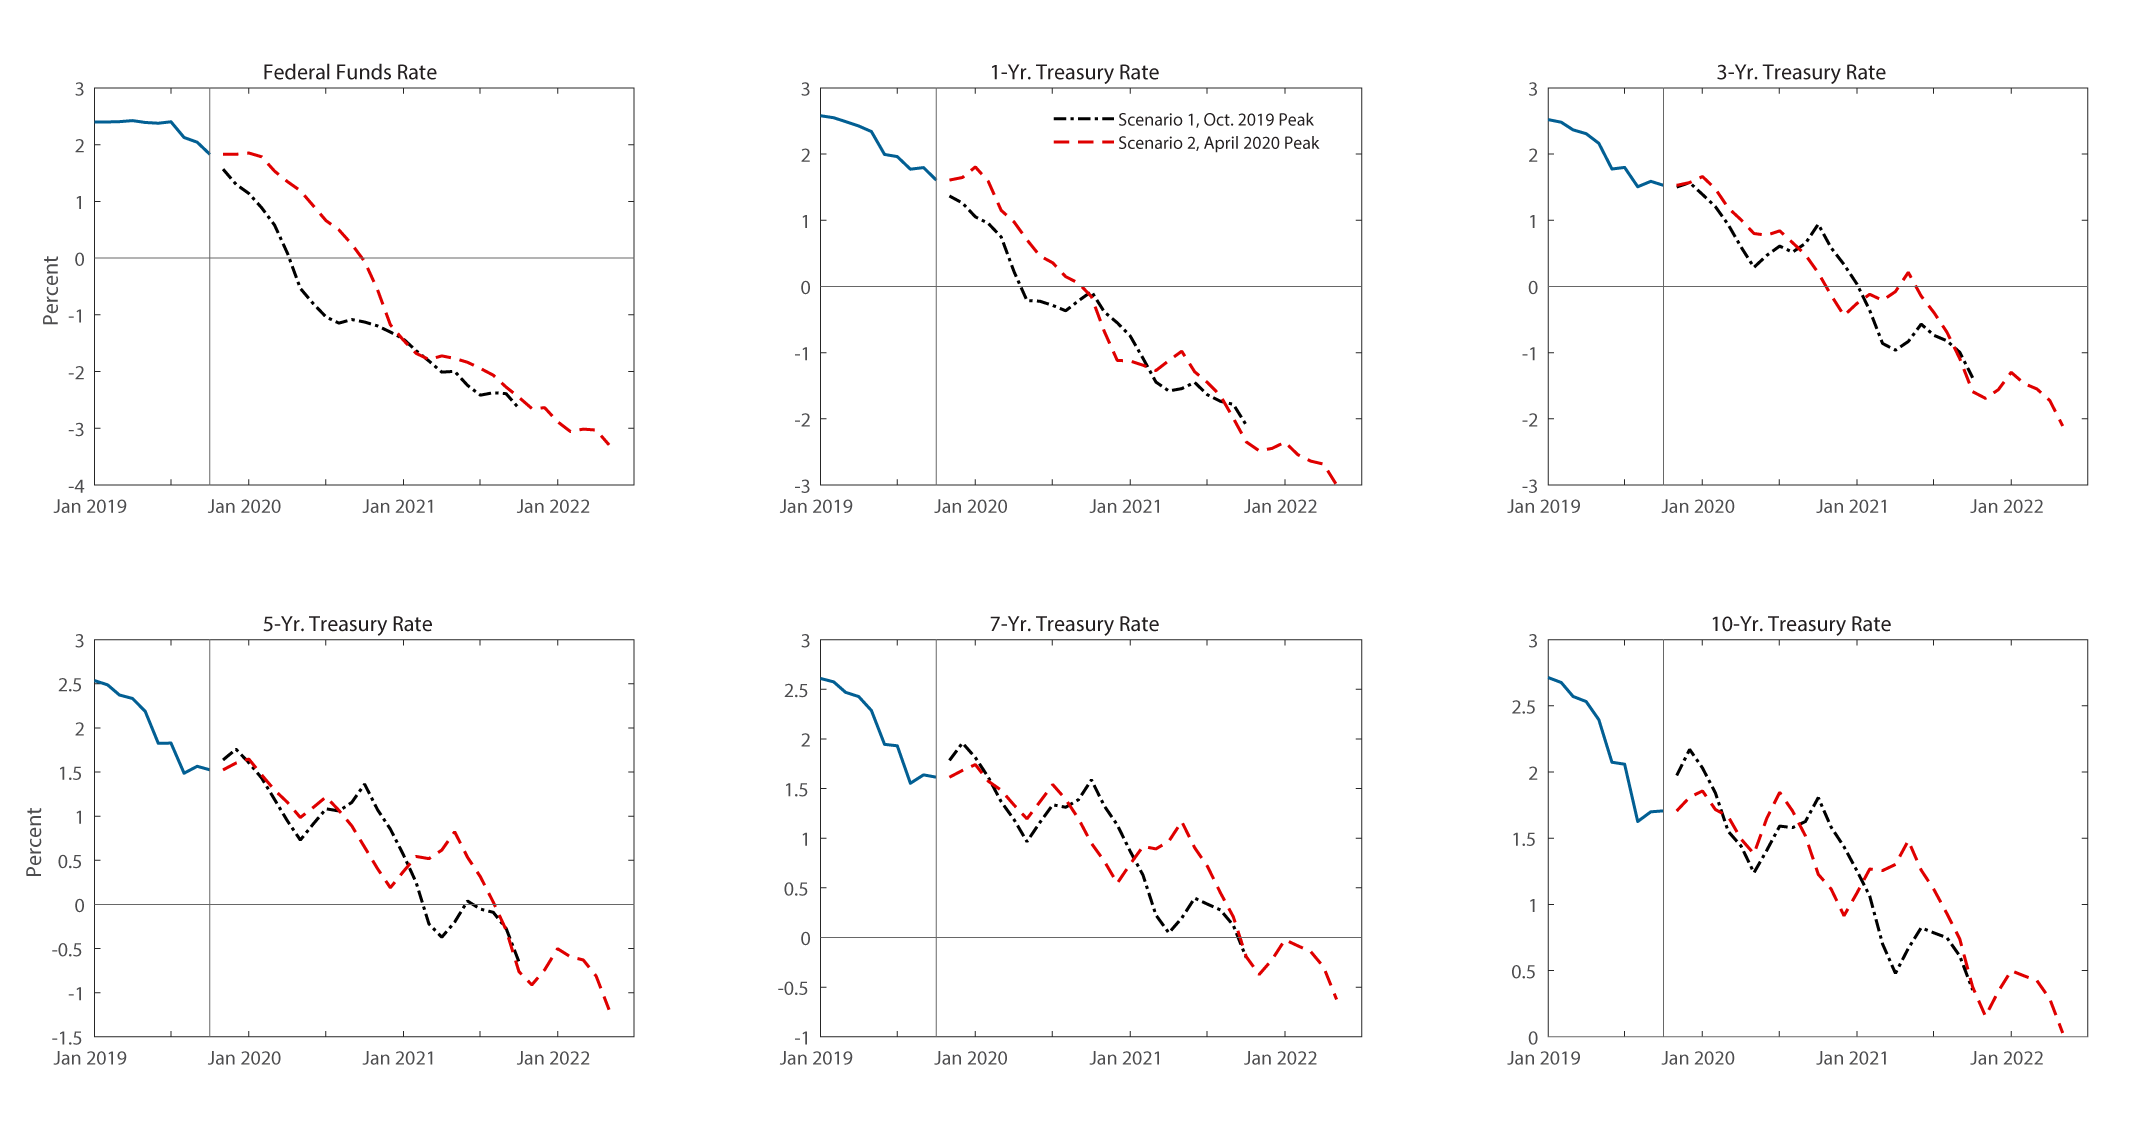 Figure 3. Nominal Interest Rates in Two Recession Scenarios. See accessible link for data description.